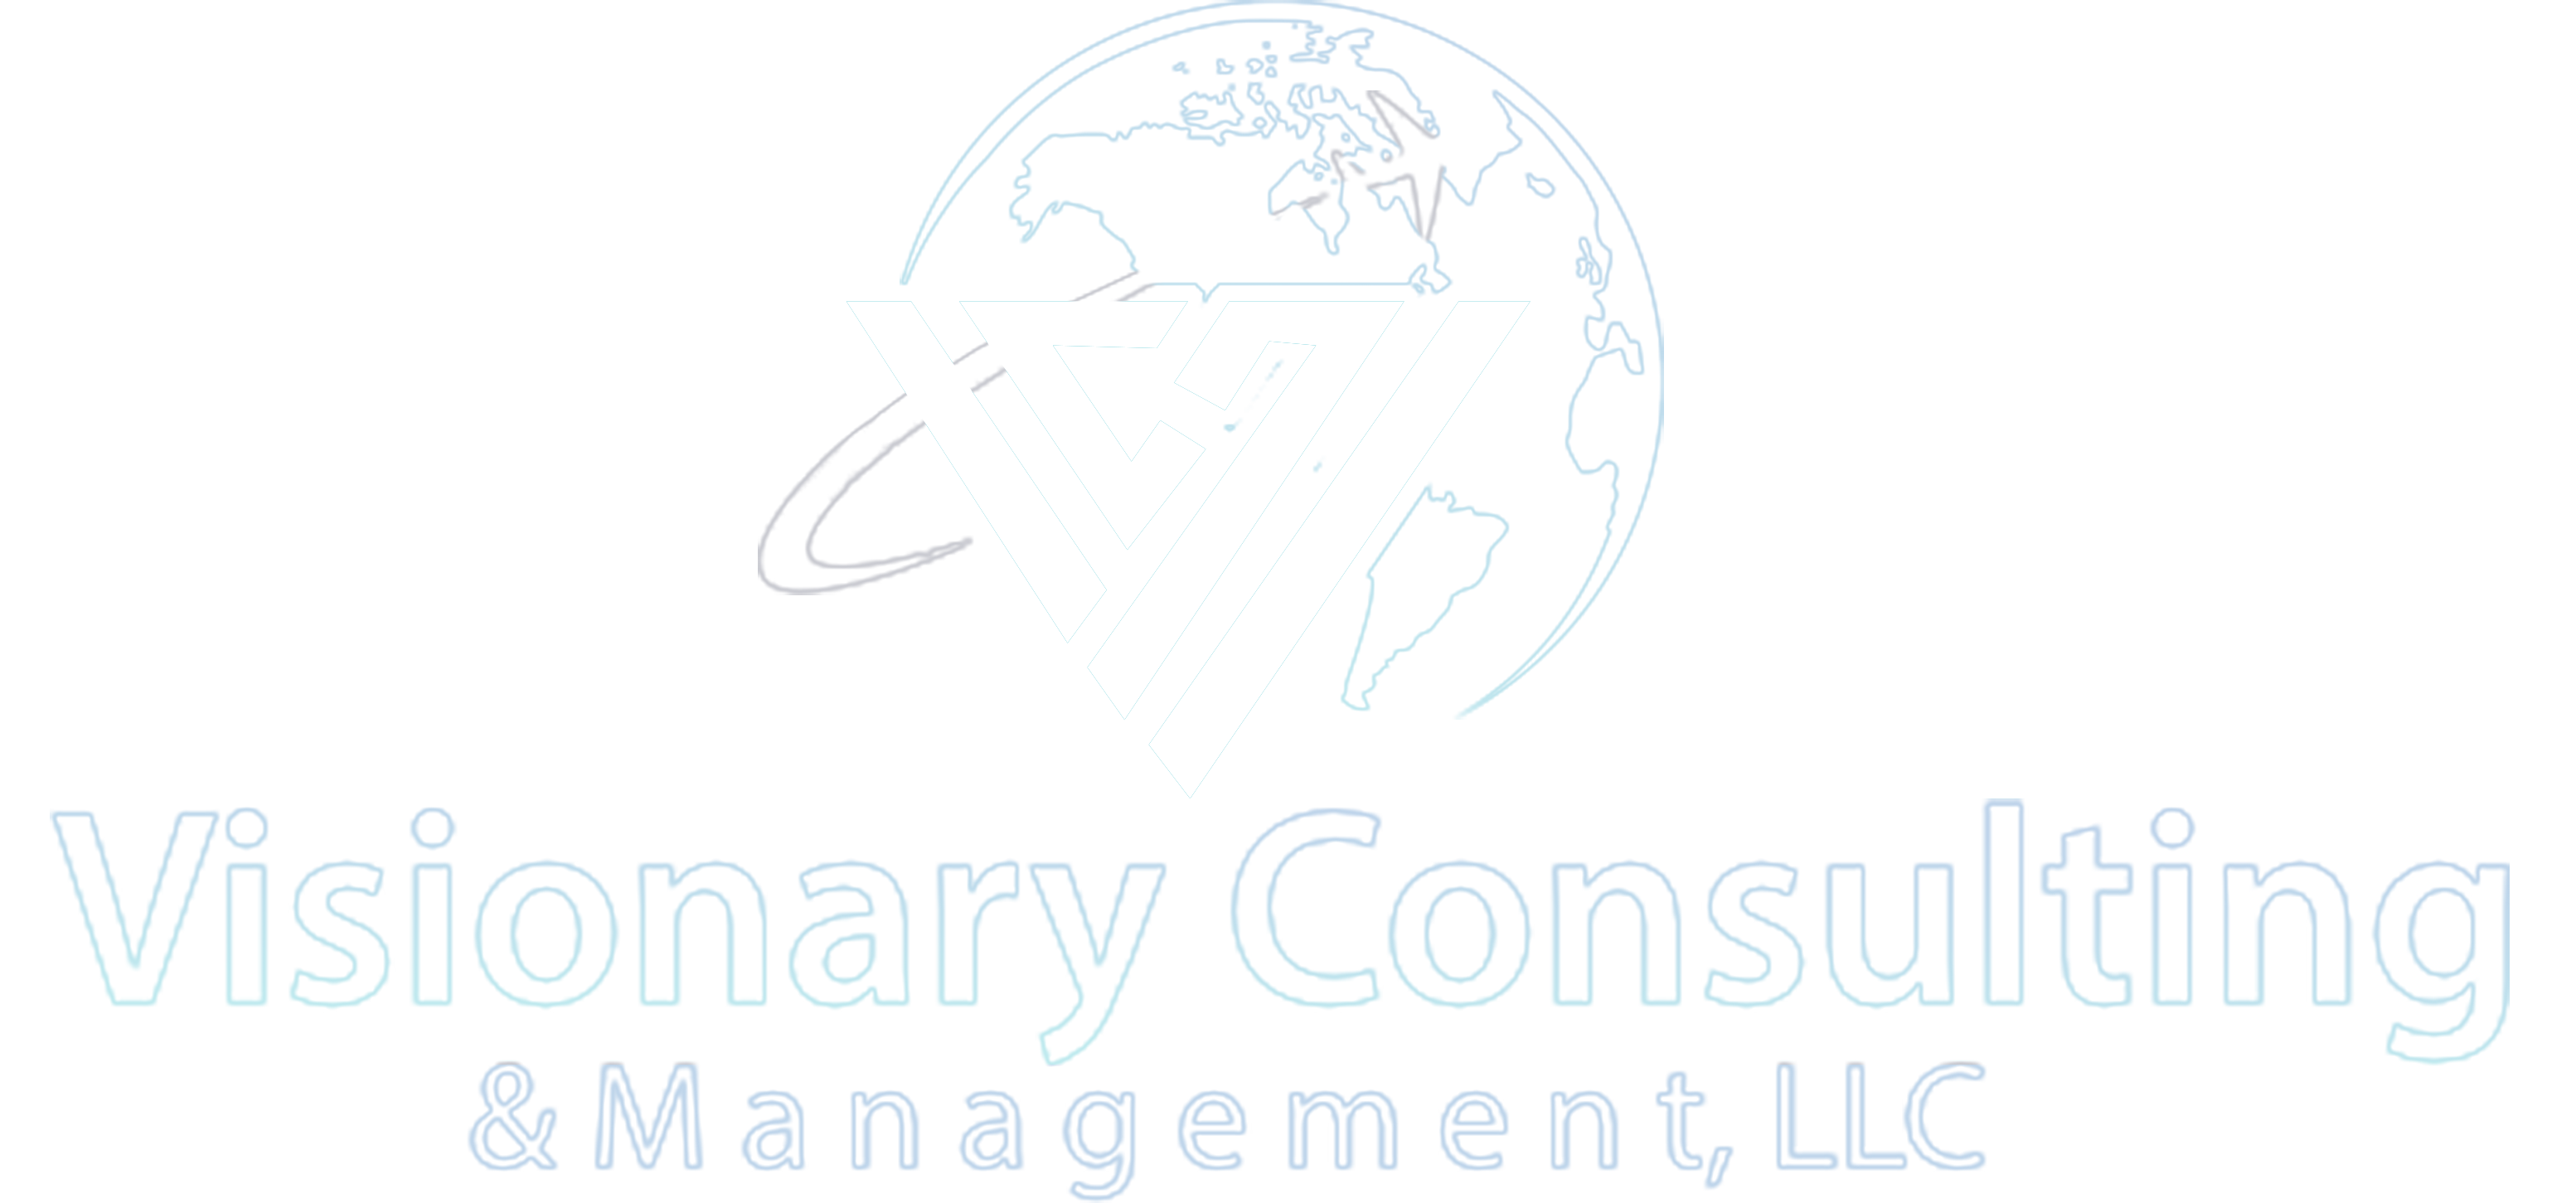 Visionary Consulting & Management, LLC